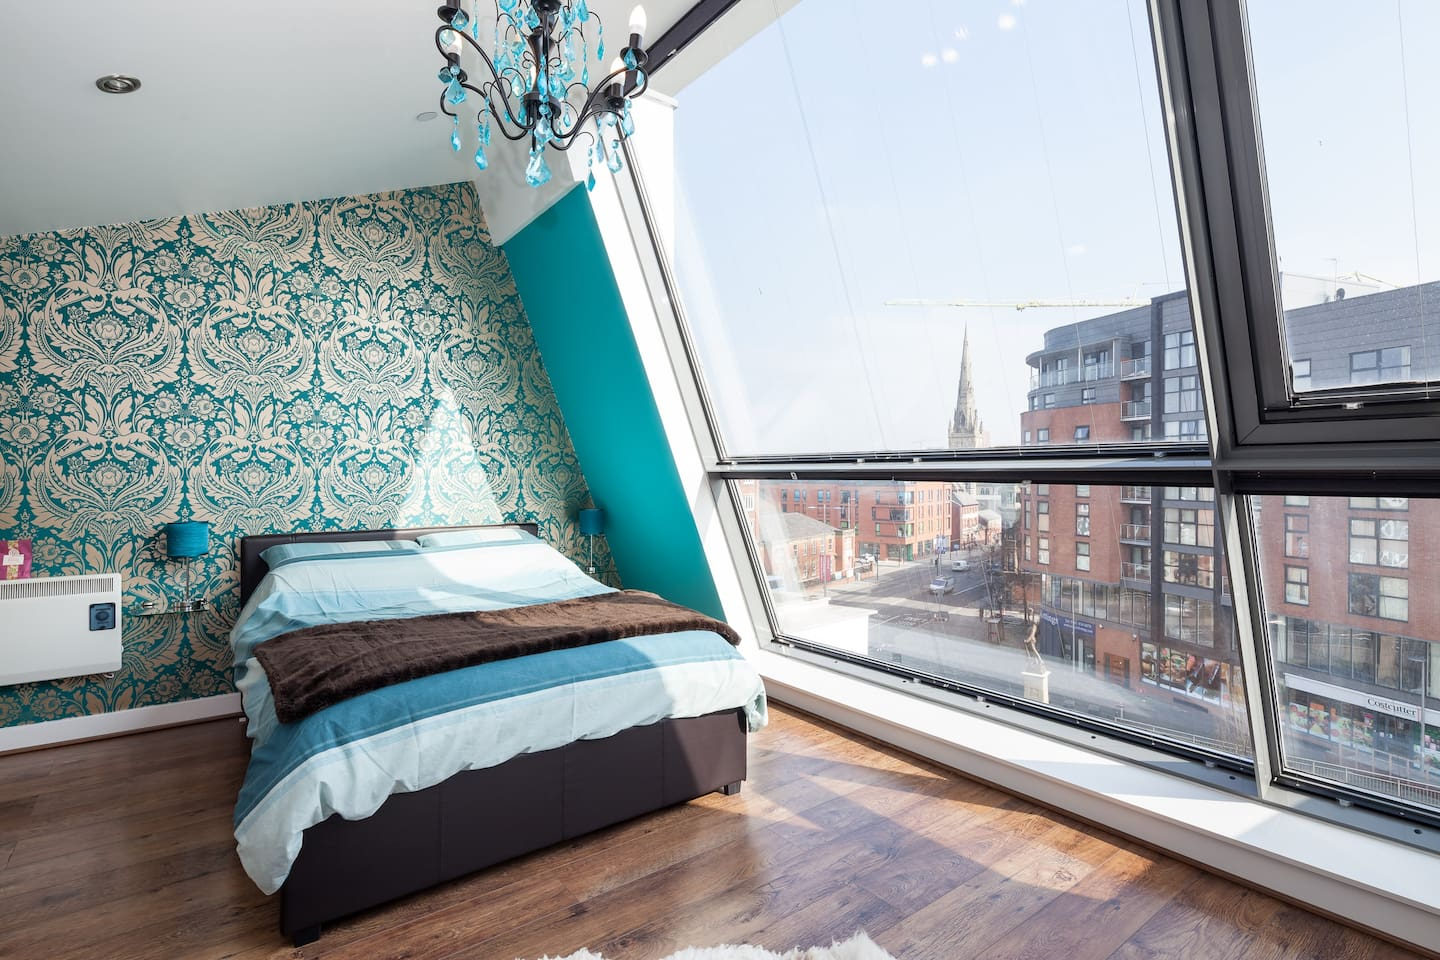 The Master bedroom with full length windows and great views